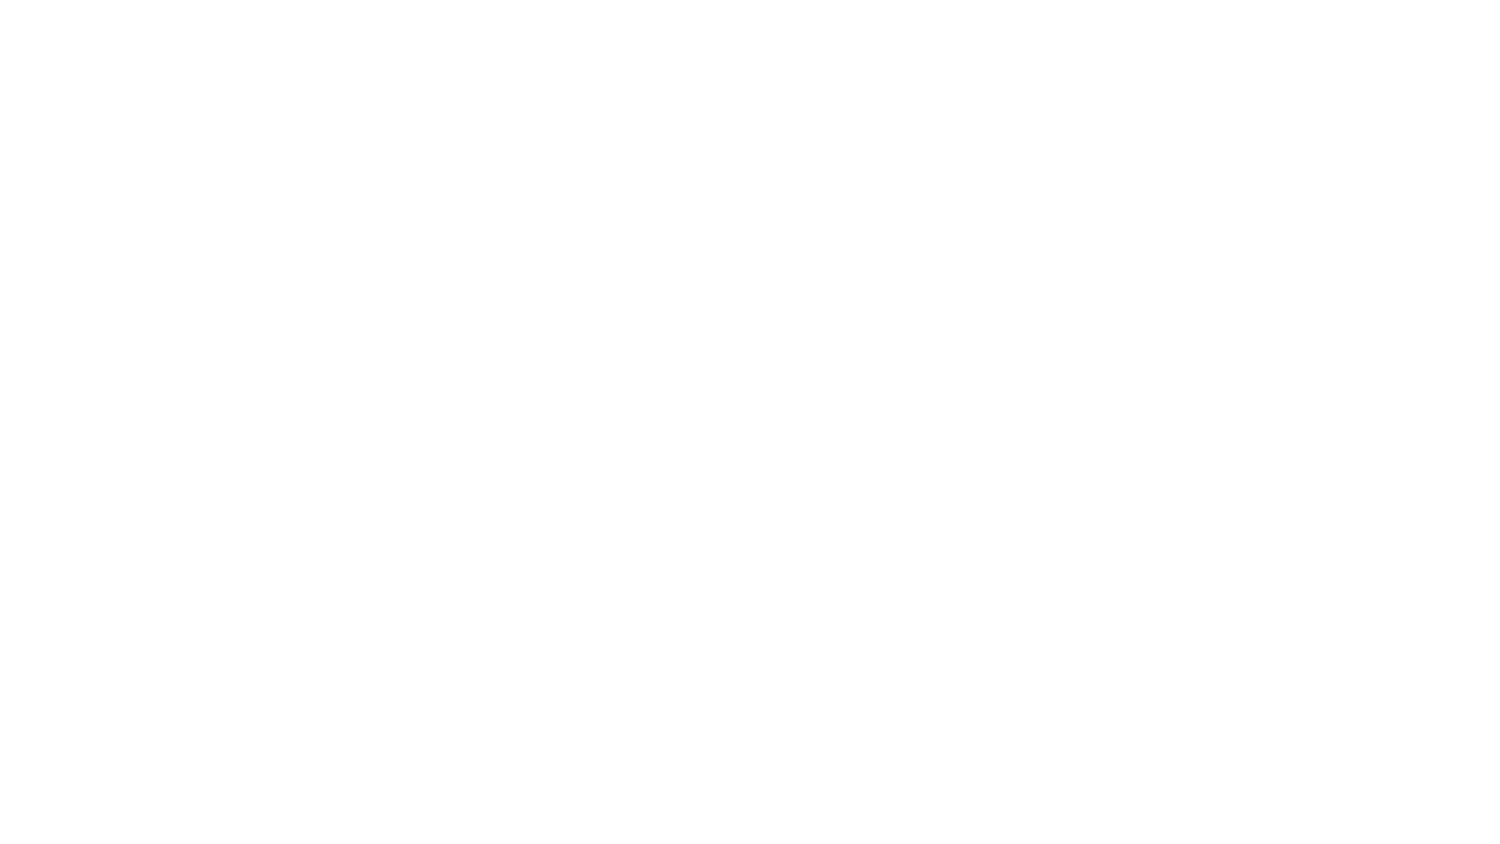 The Way Food Pantry